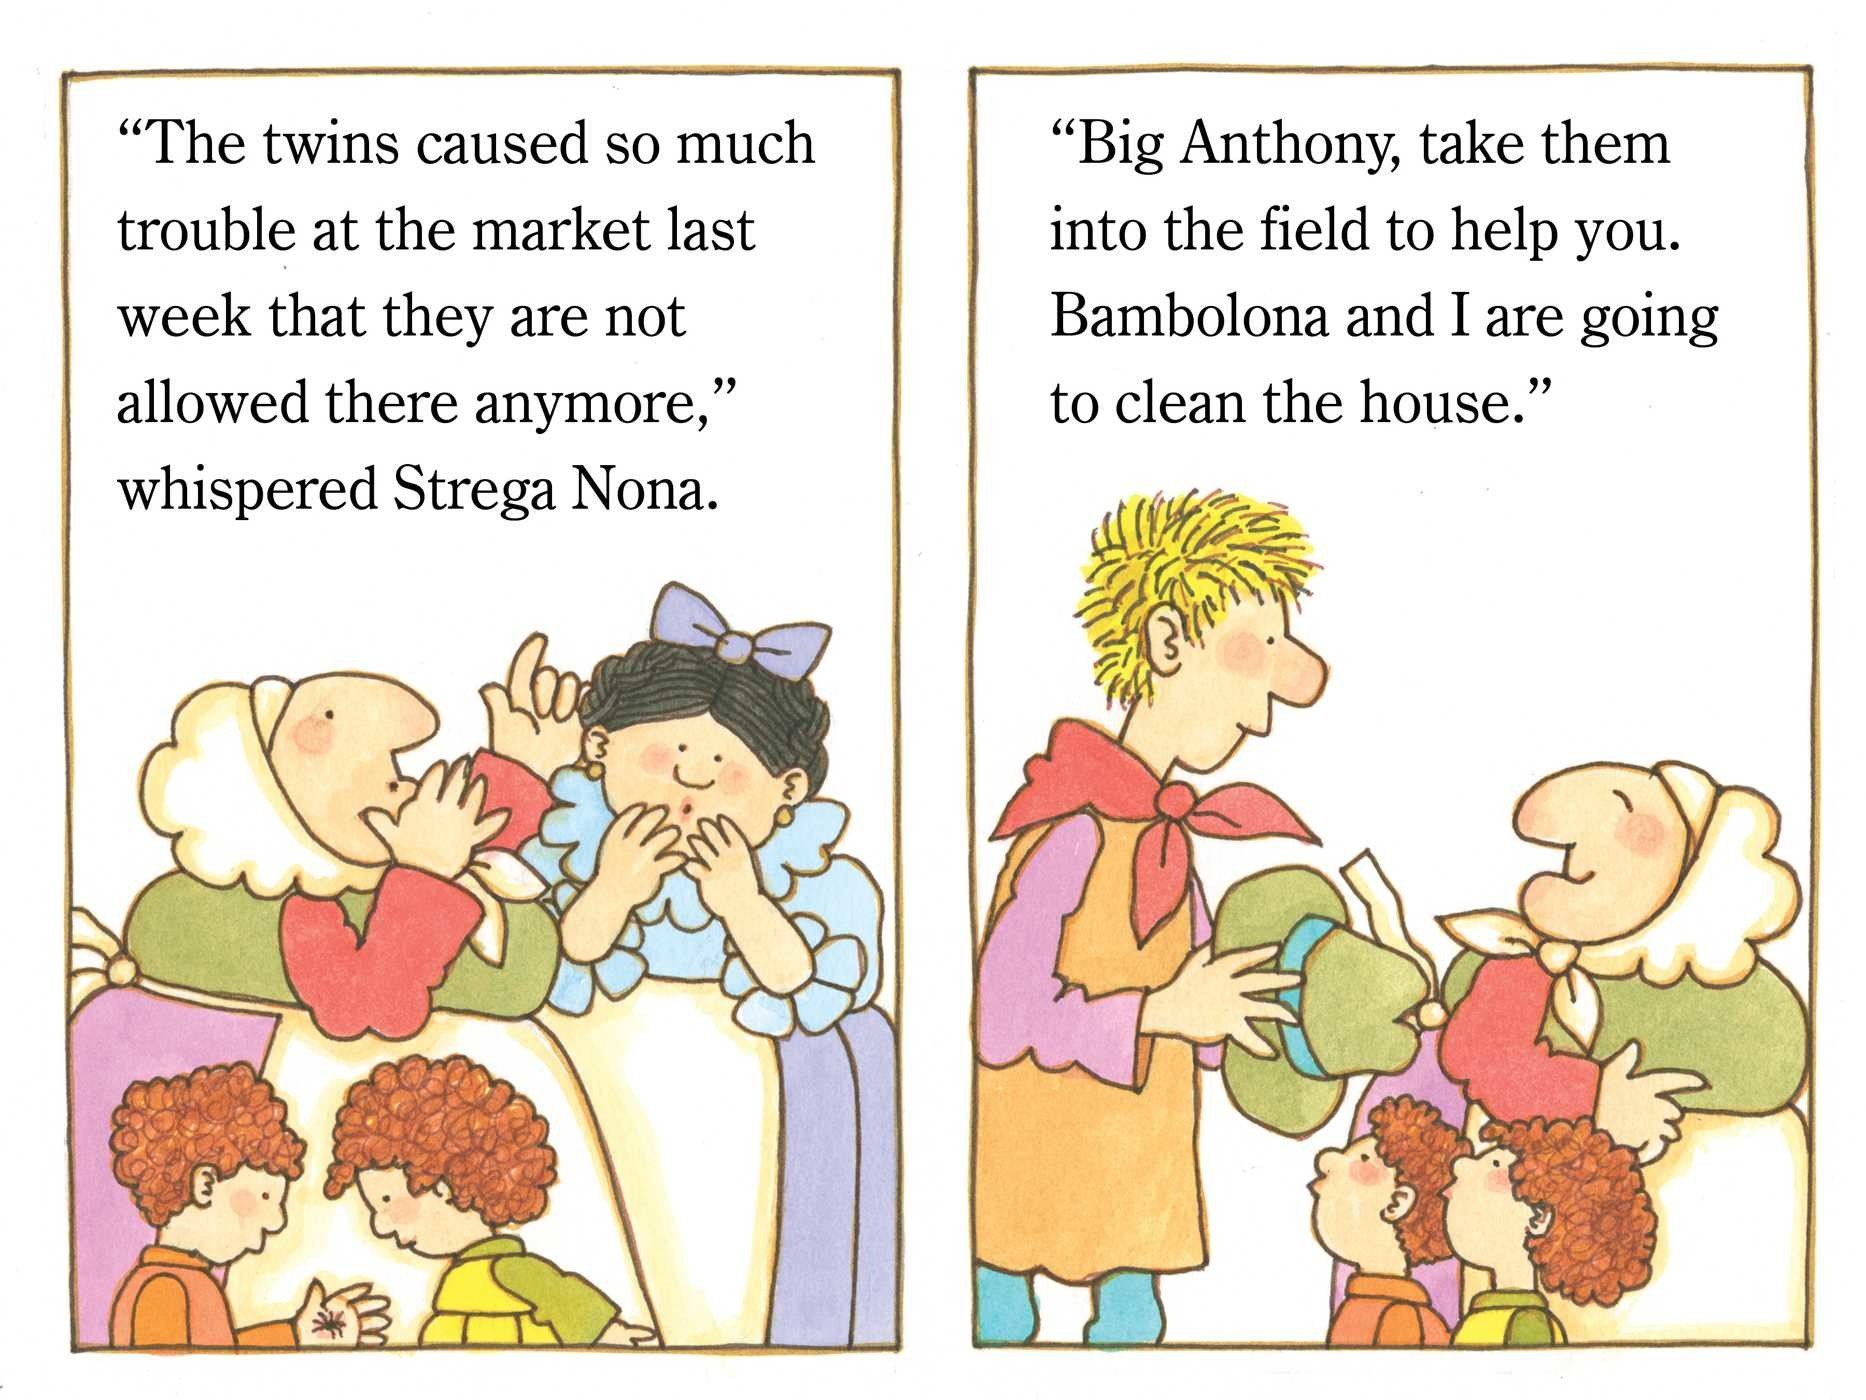 Strega nona and the twins 9781481481373.in01